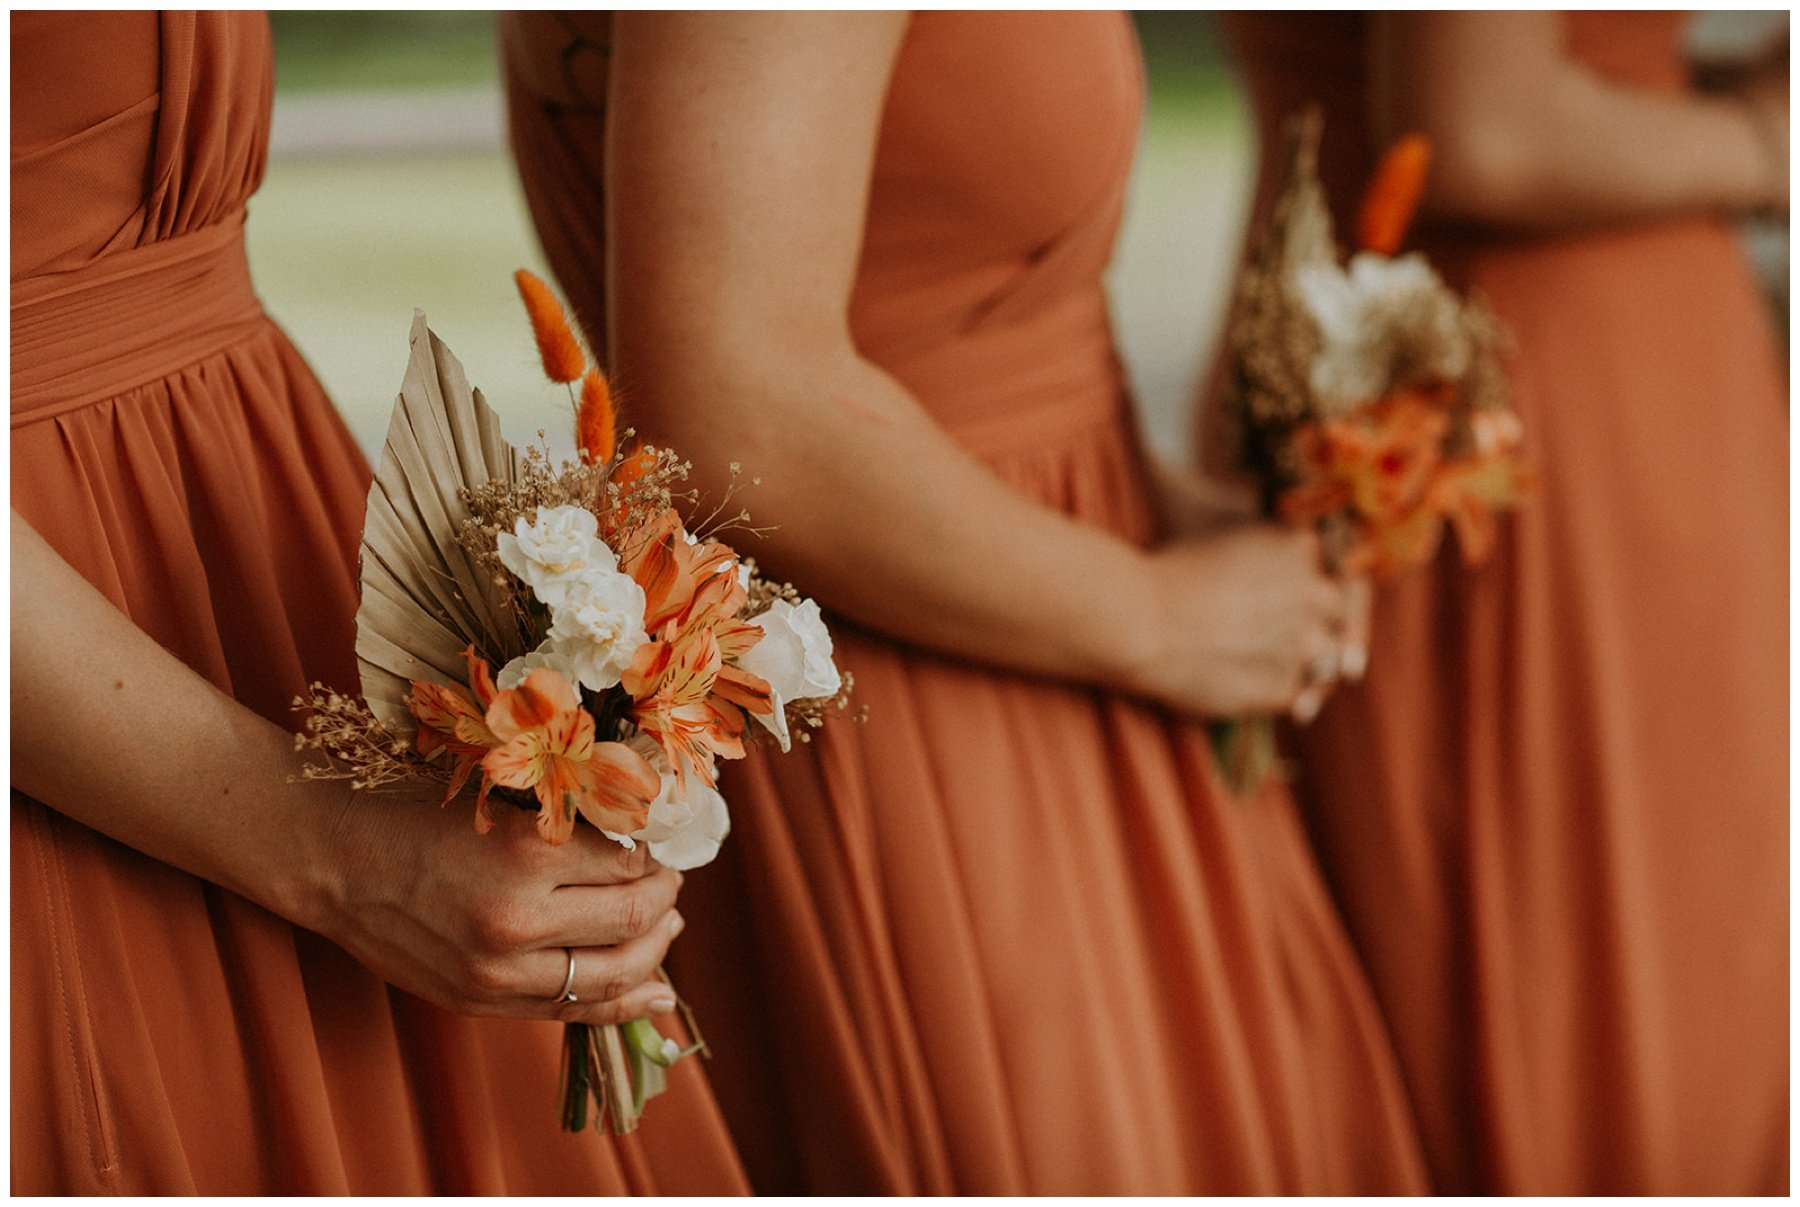 Bridesmaids wearing orange dresses and carrying bouquets